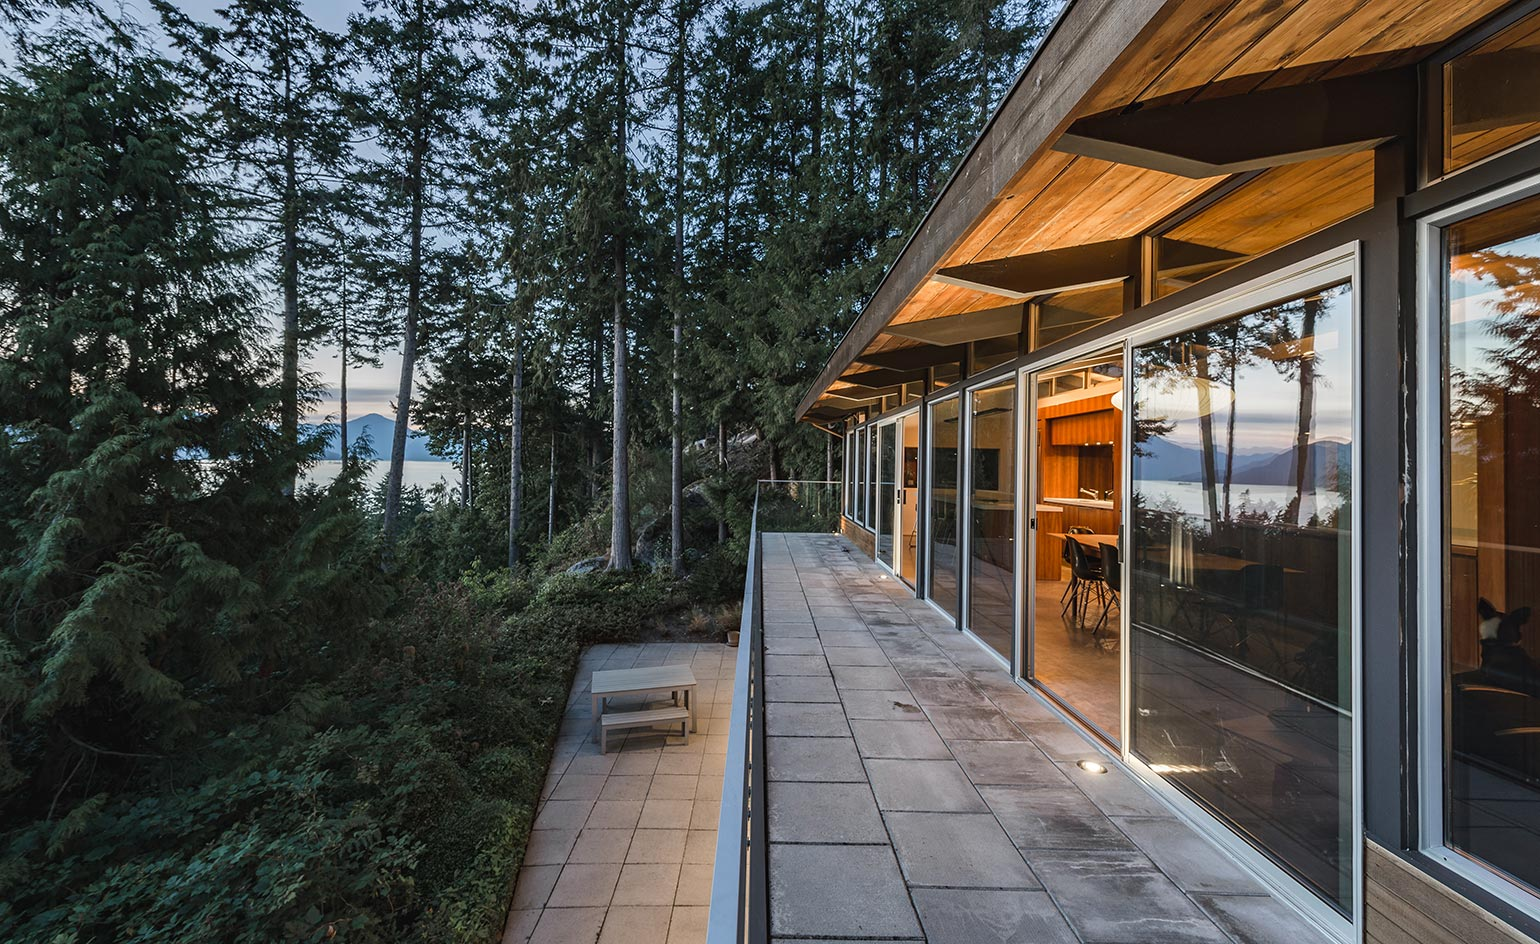 This Years 12th Annual West Coast Modern Home Tour